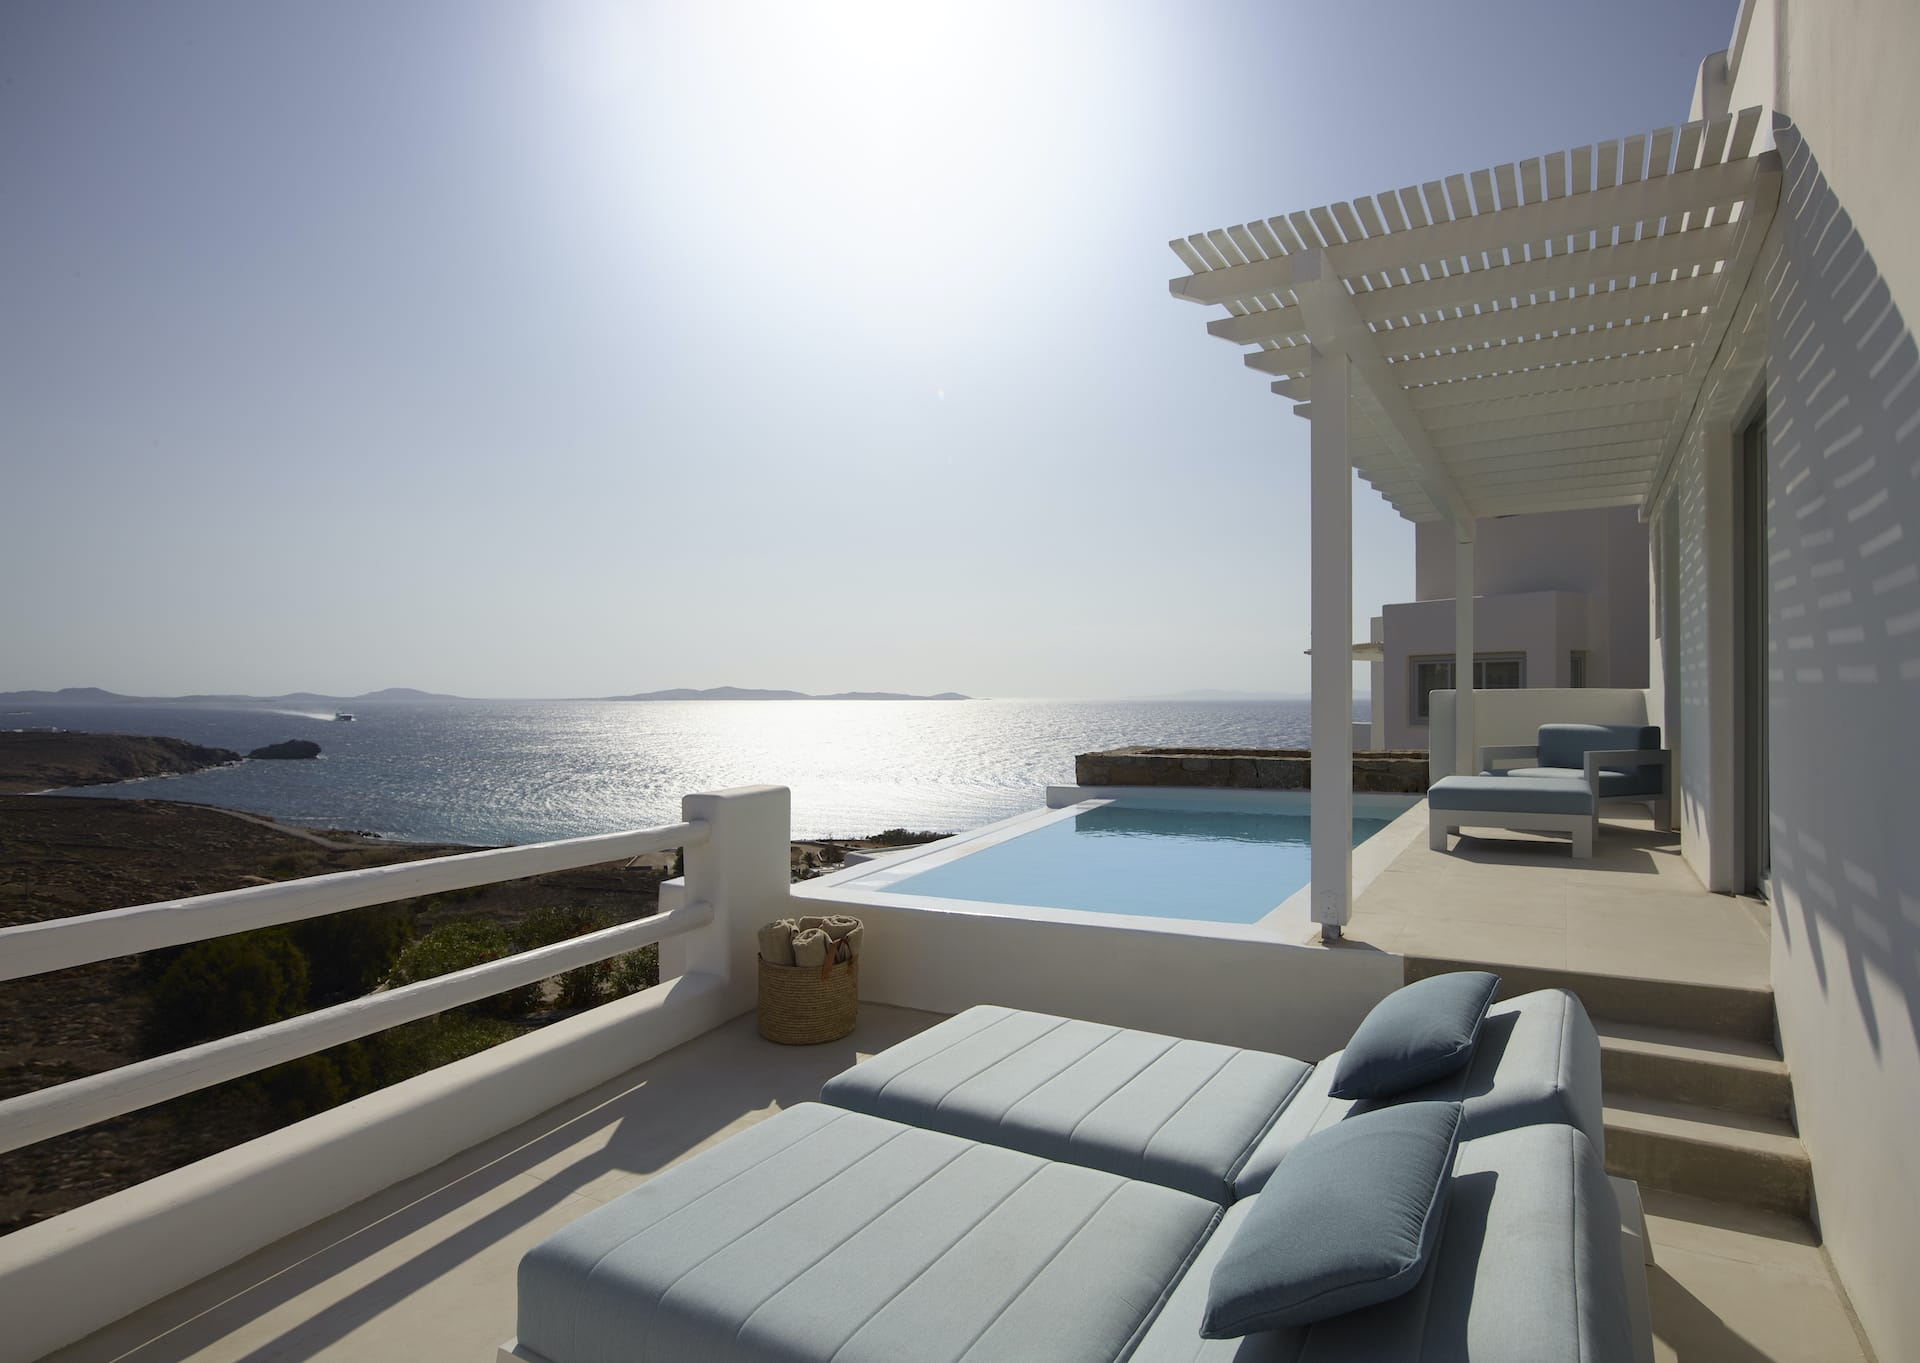 The Epic Blue Two-Bedroom Villa in Houlakia Bay with a large private pool and plenty of terraces.